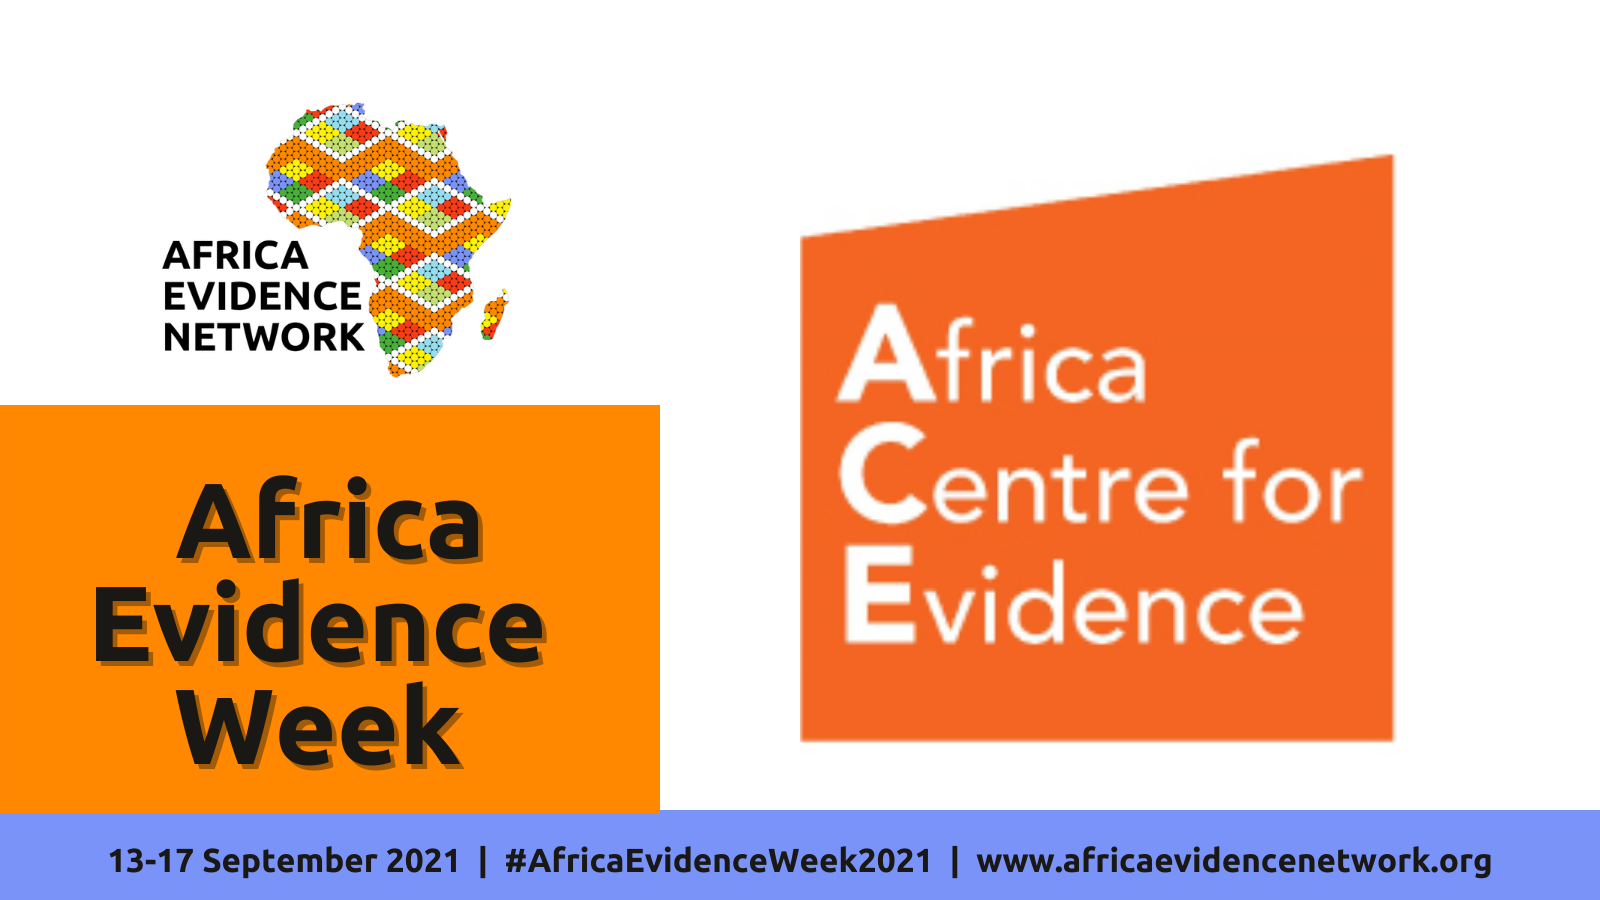 Africa Evidence Week 2021 event: Capacity development for evidence use in Africa: An orientation